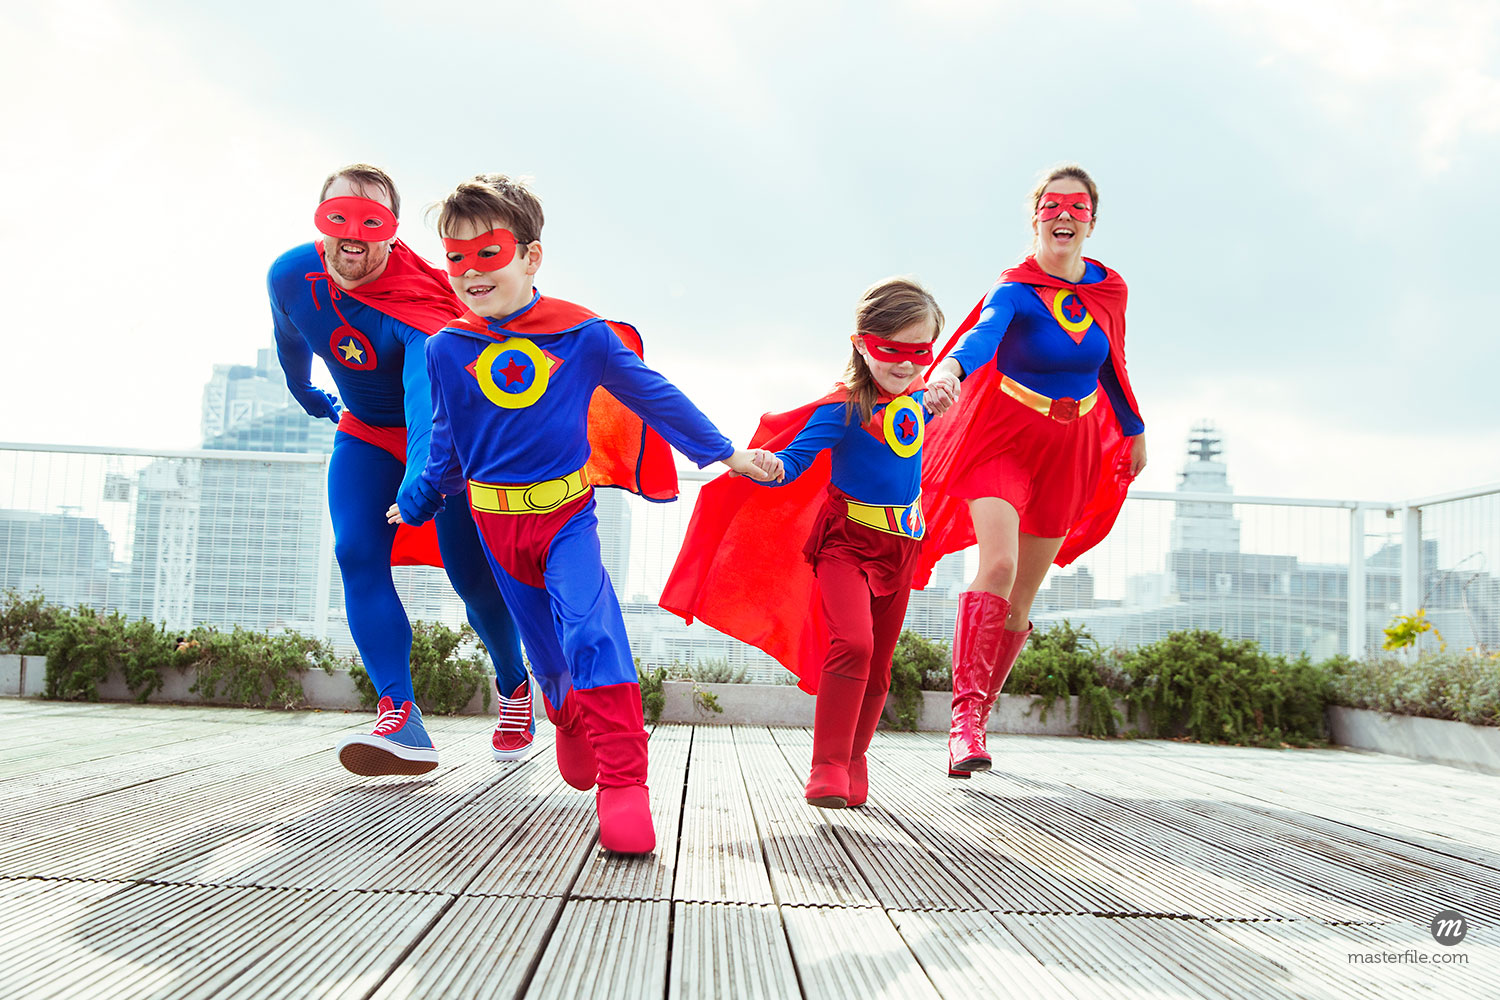 Superhero family playing on city rooftop  © Caia Image / Masterfile